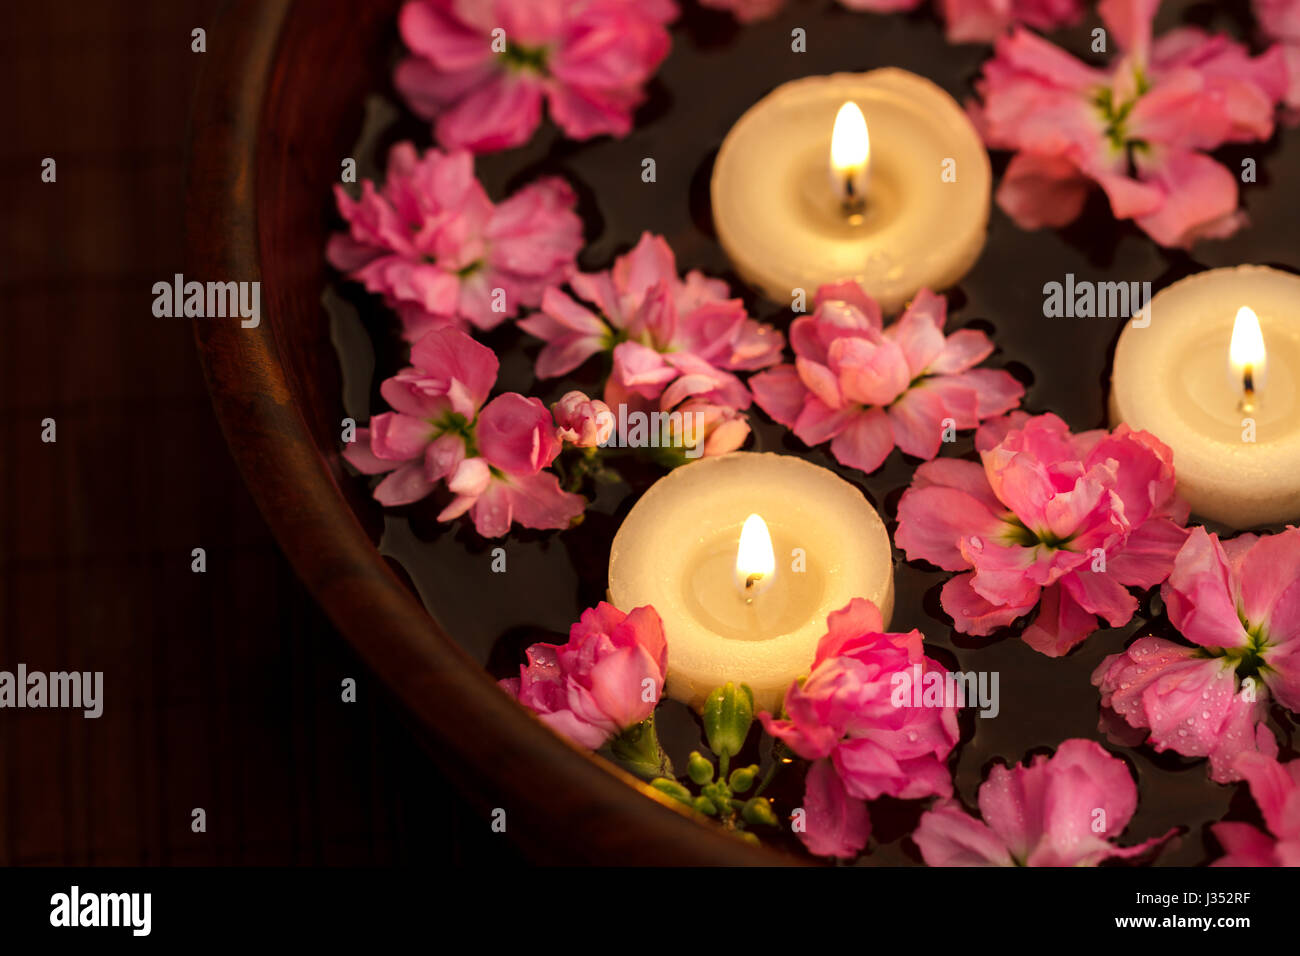 Floating Candles Bowl Stock Photos  Floating Candles Bowl Stock